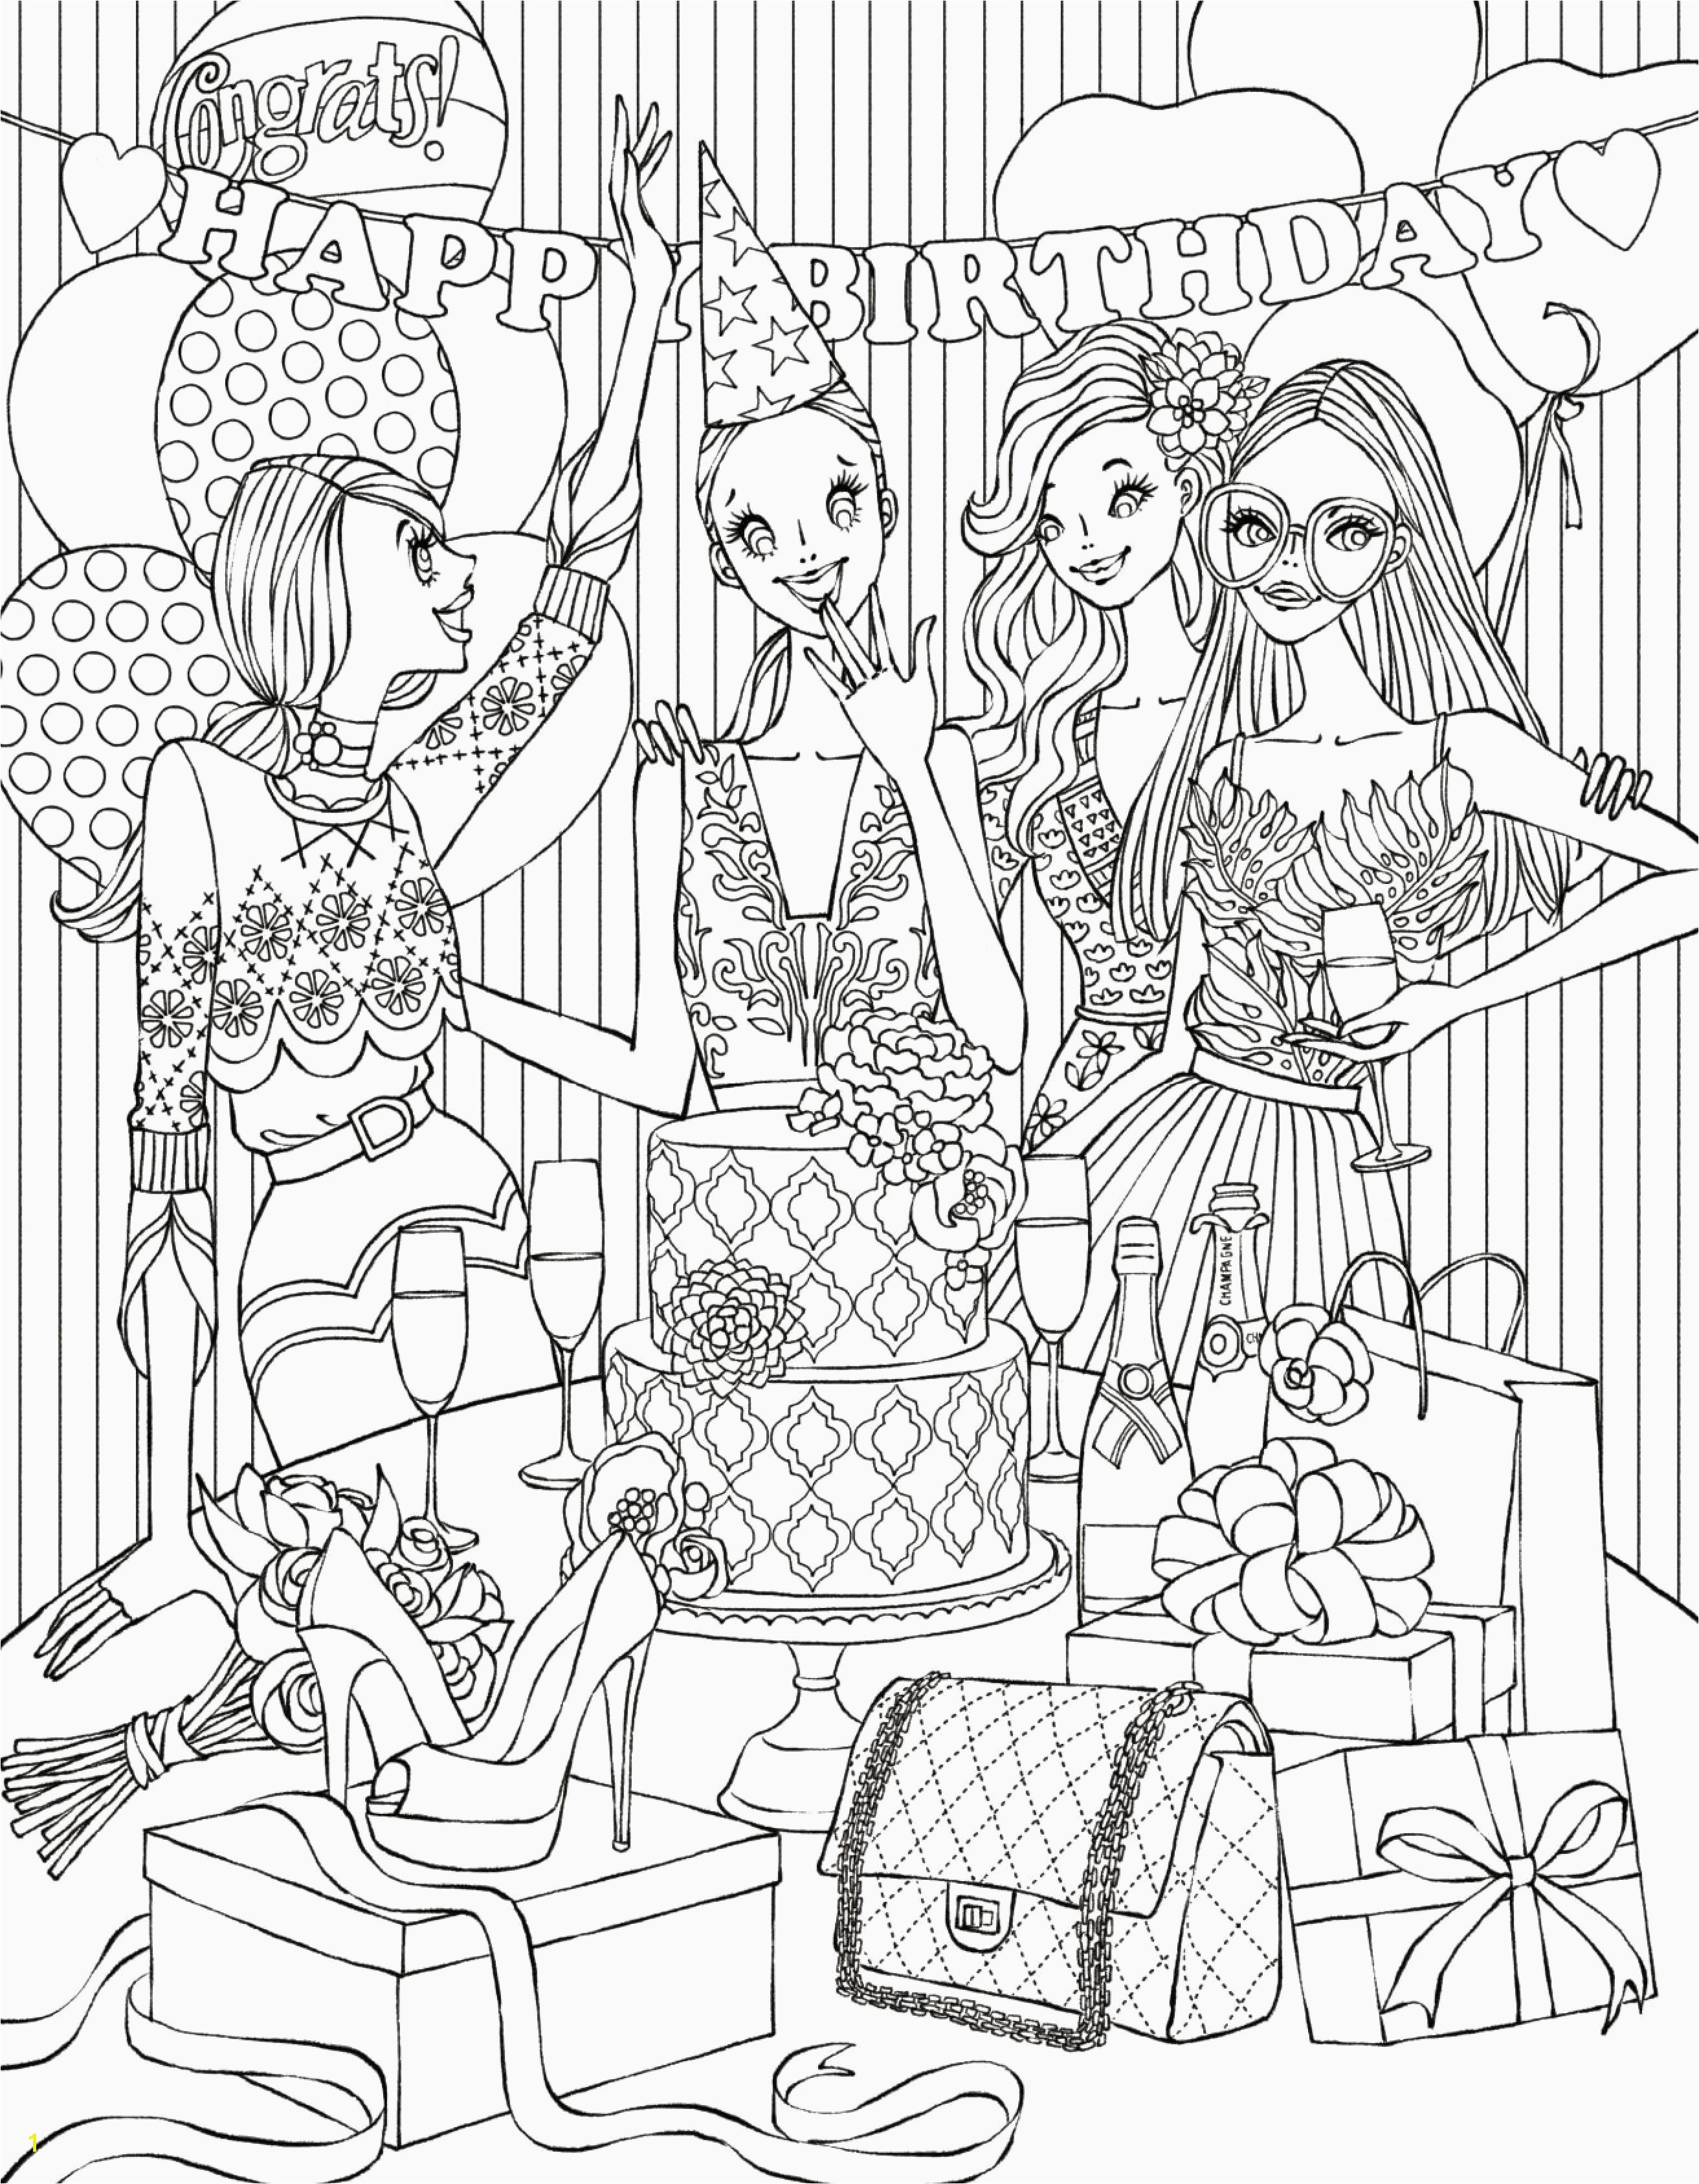 Beauty and the Beast Coloring Pages Awesome Design Coloring Pages Printable Best Printable Fresh S S Media